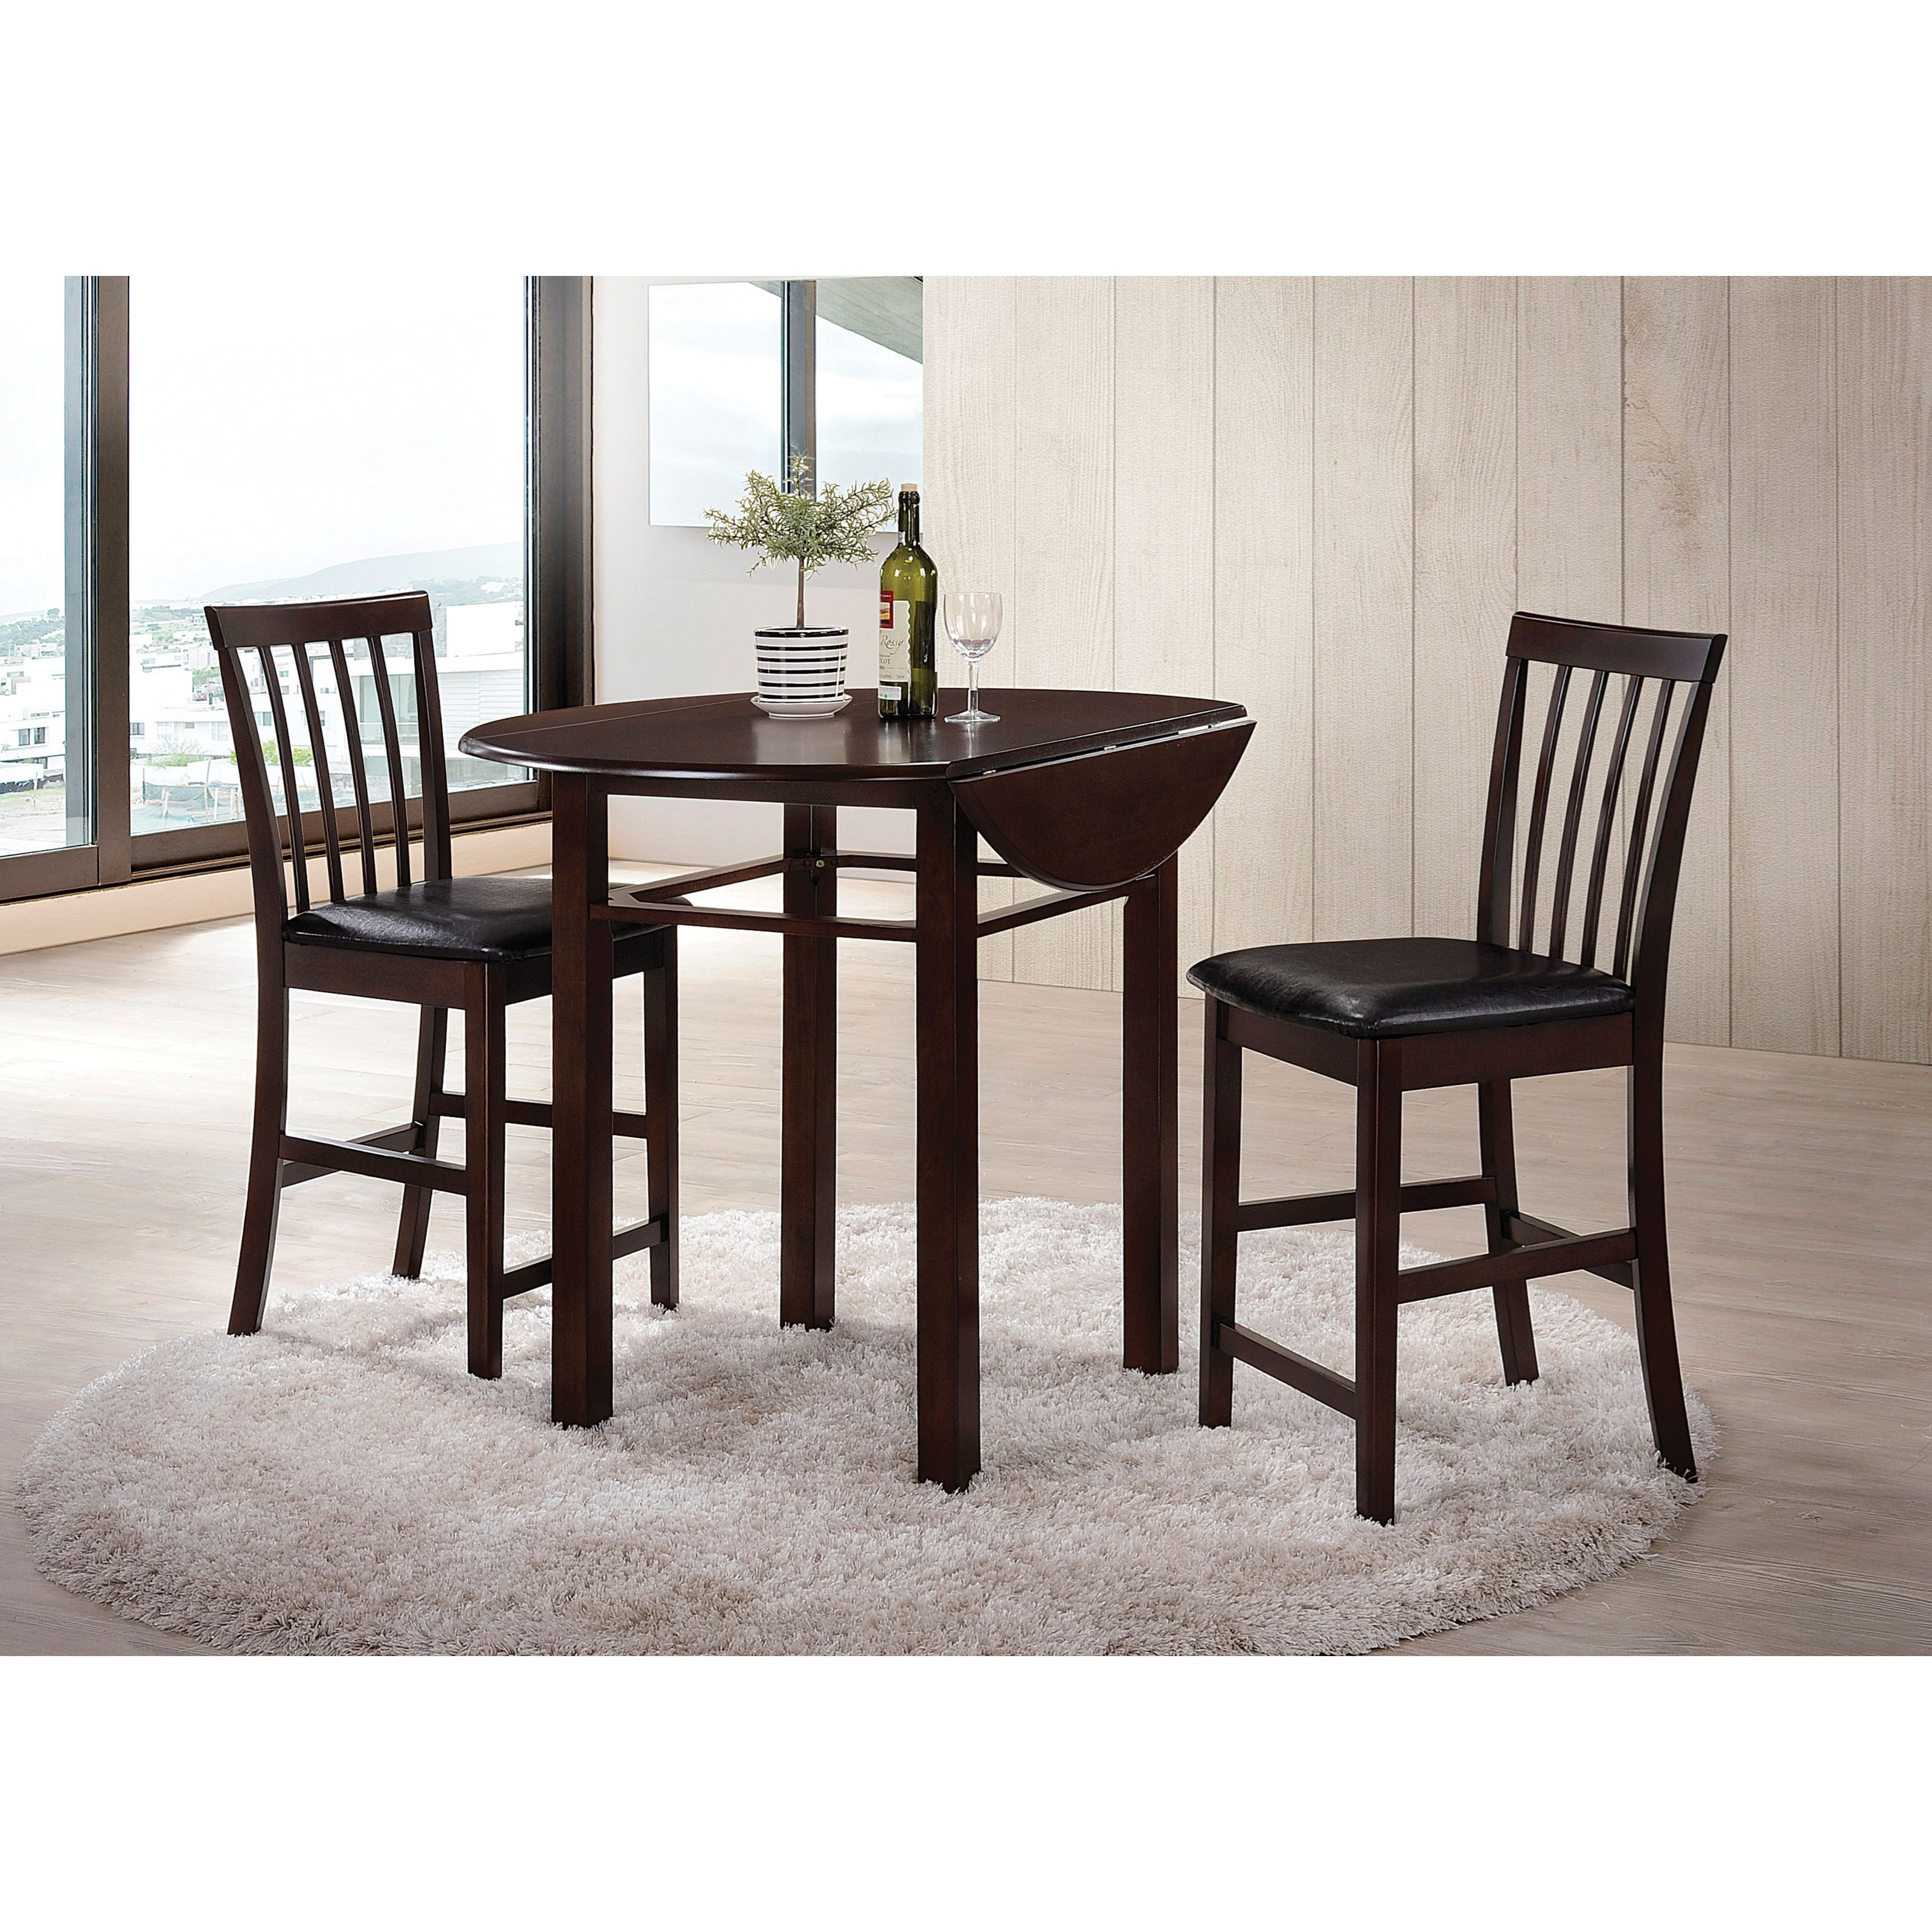 Artie Counter Height Dining Set with 2 Chairs by Acme Furniture at Carolina Direct